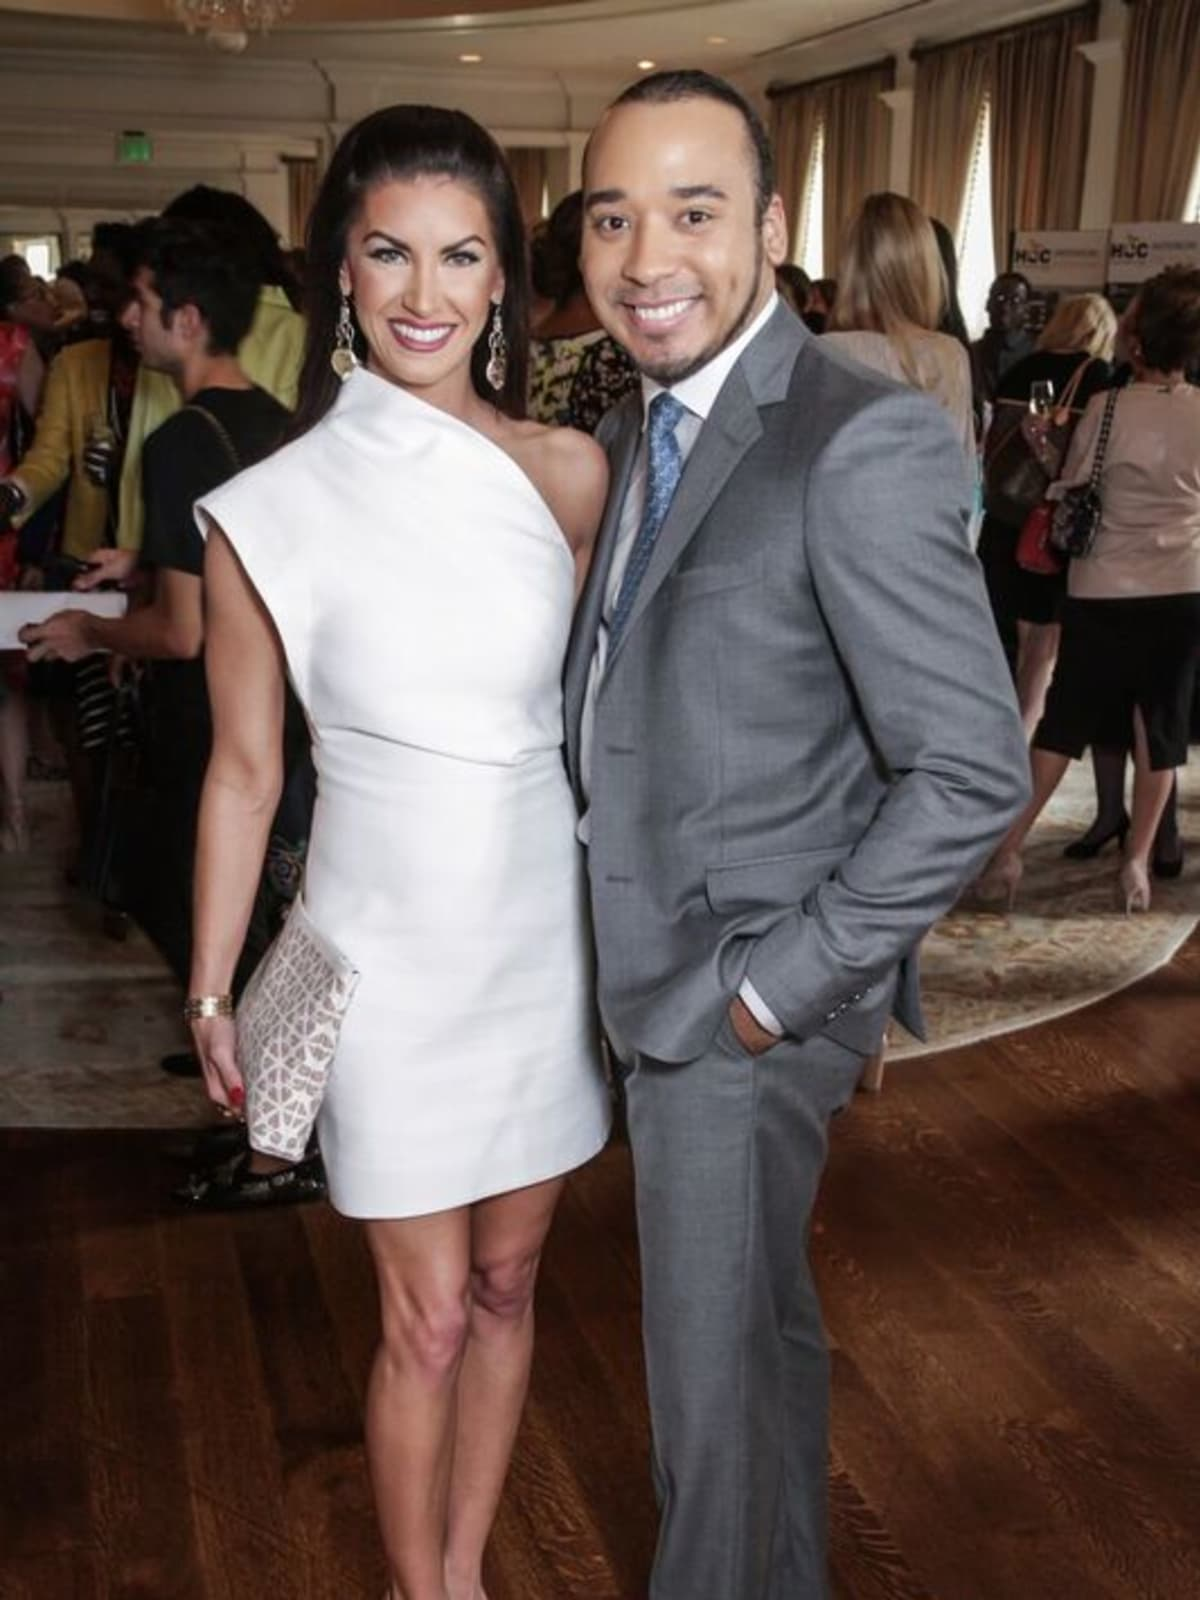 Nicole Lassiter, Brandon McClendon at Passion for Fashion luncheon